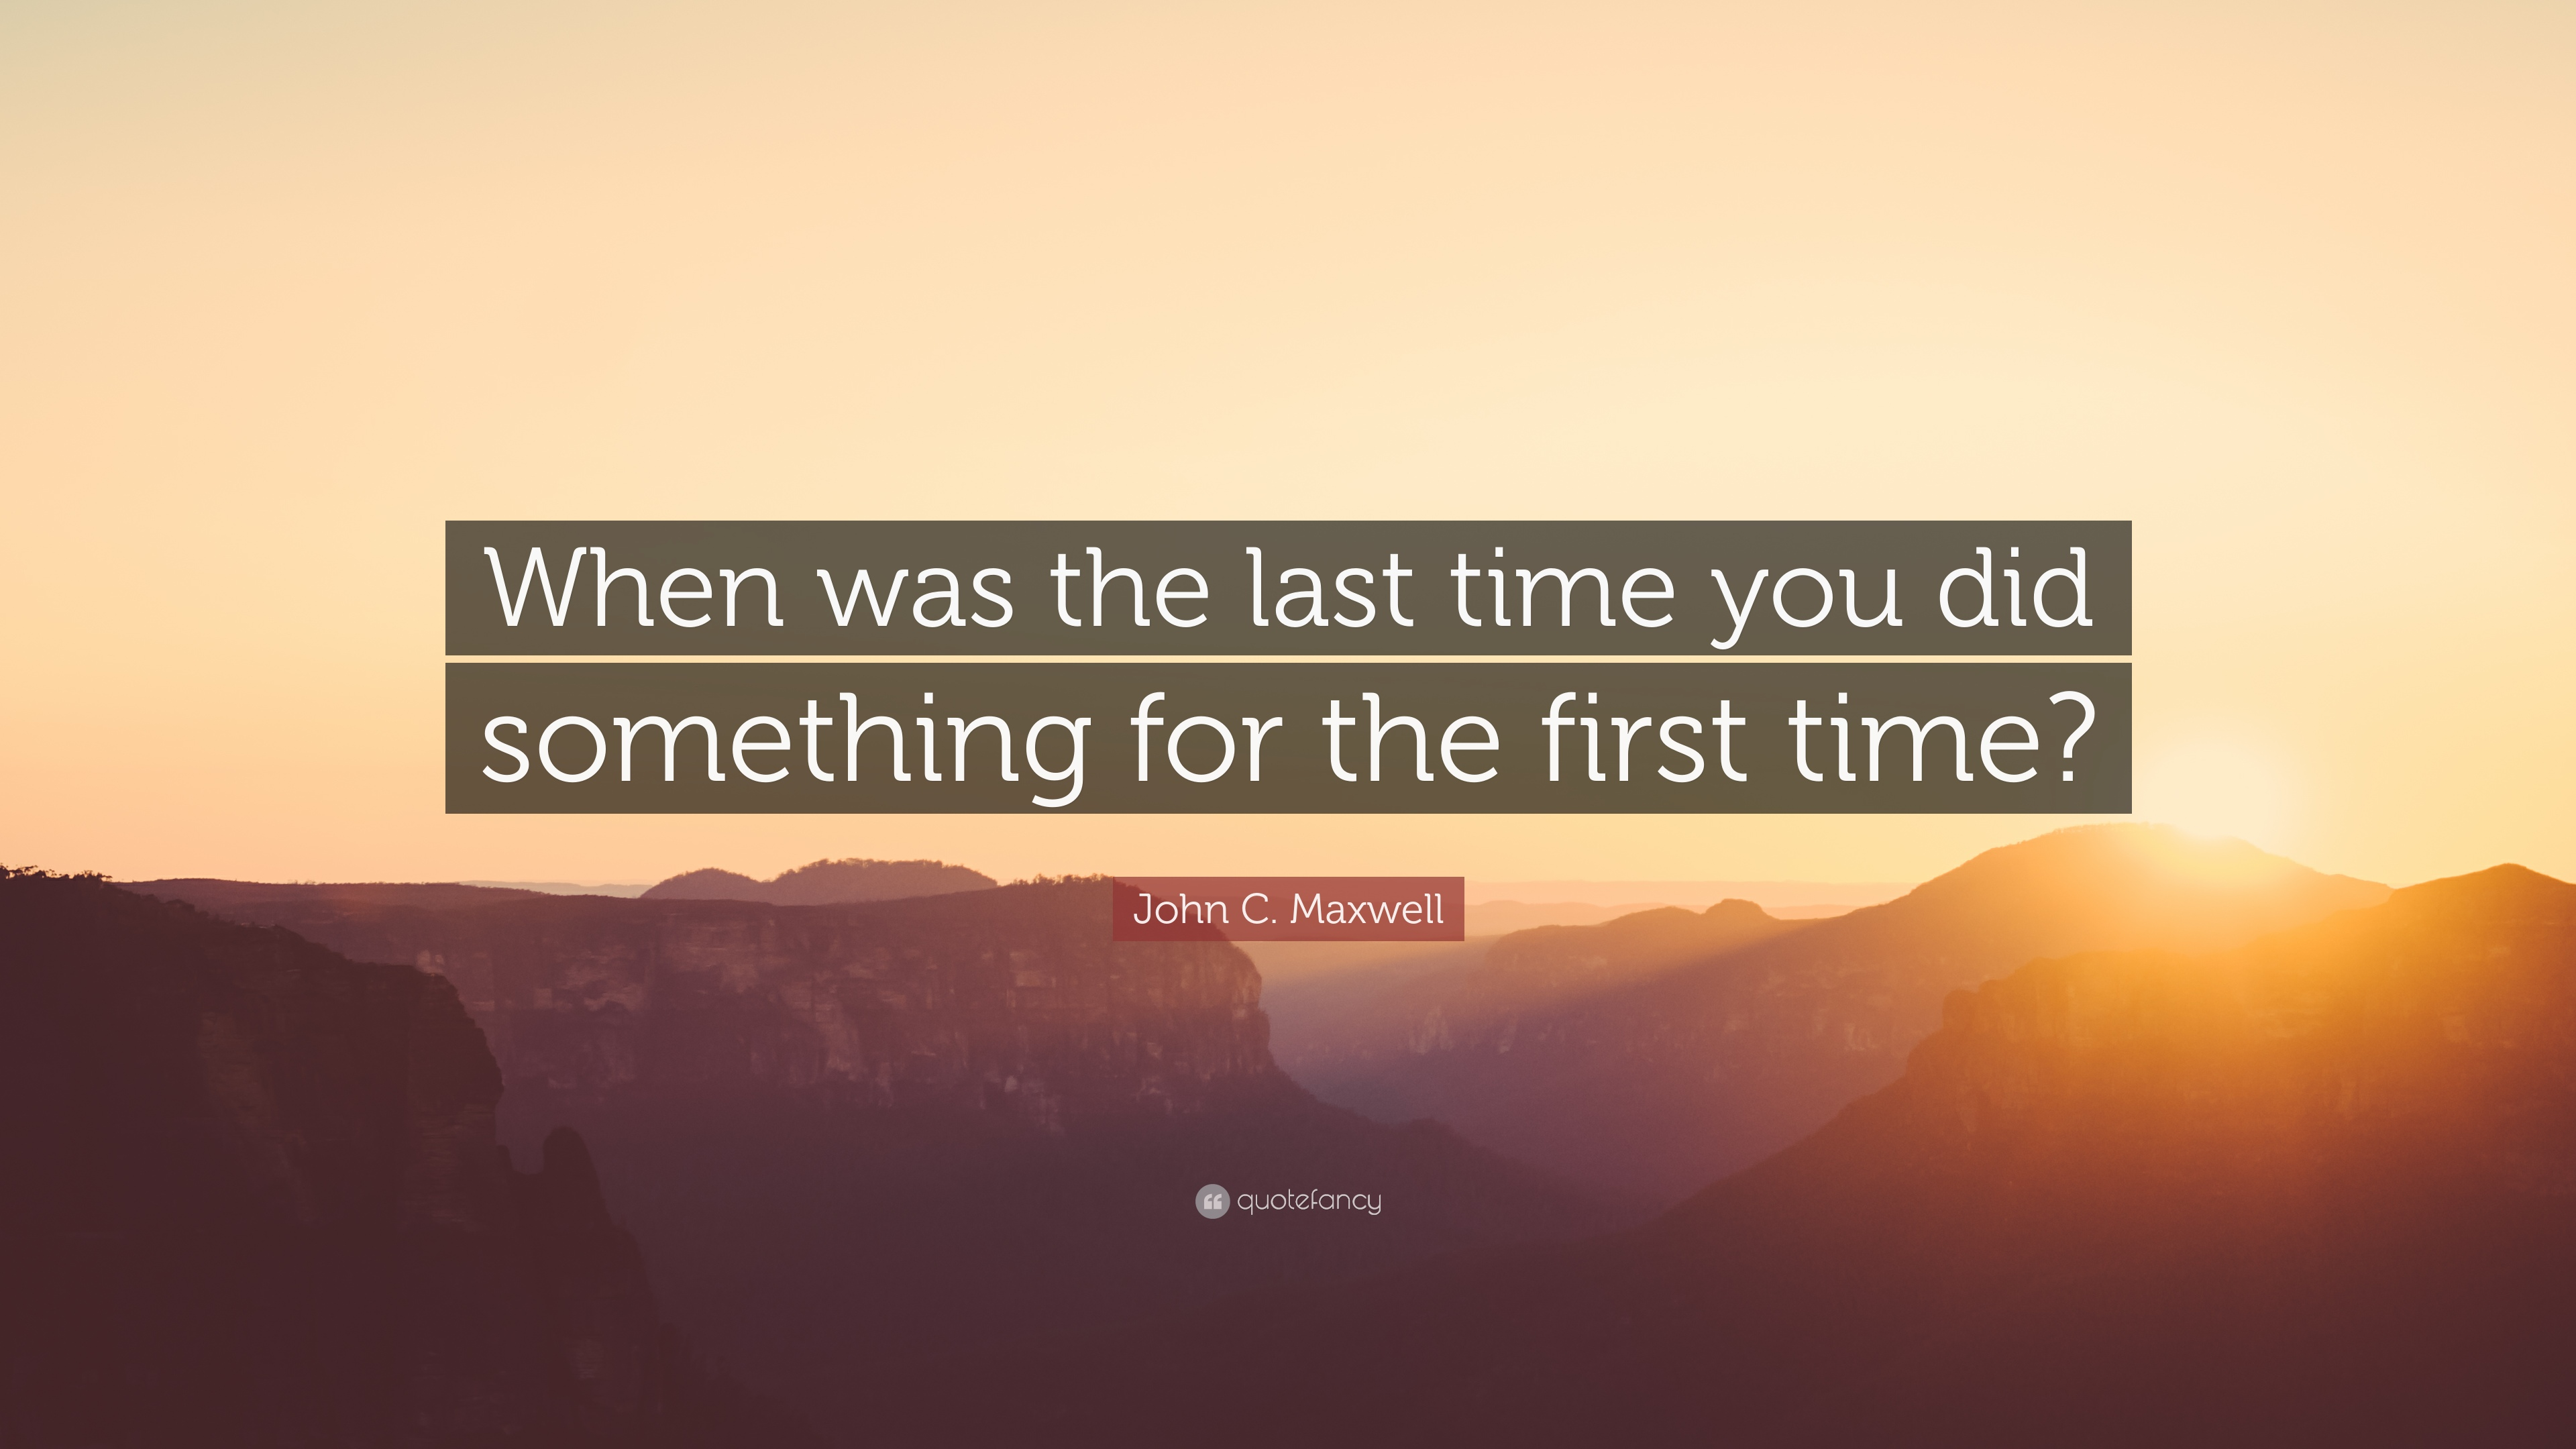 john c maxwell quote when was the last time you did something for